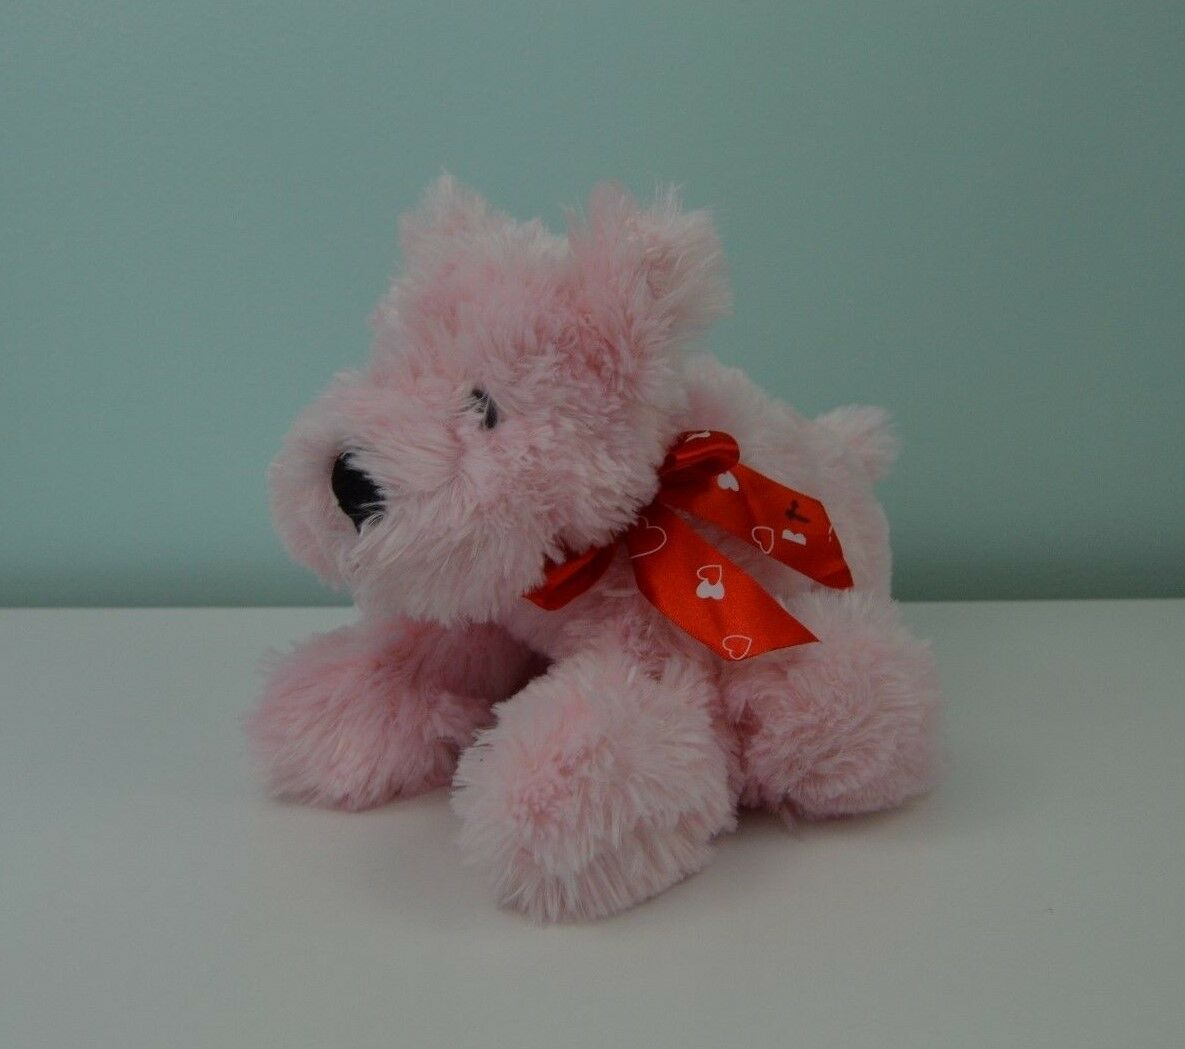 Animal Adventure Pink Puppy Dog Plush Stuffed Animal Toy Red Bow White Hearts